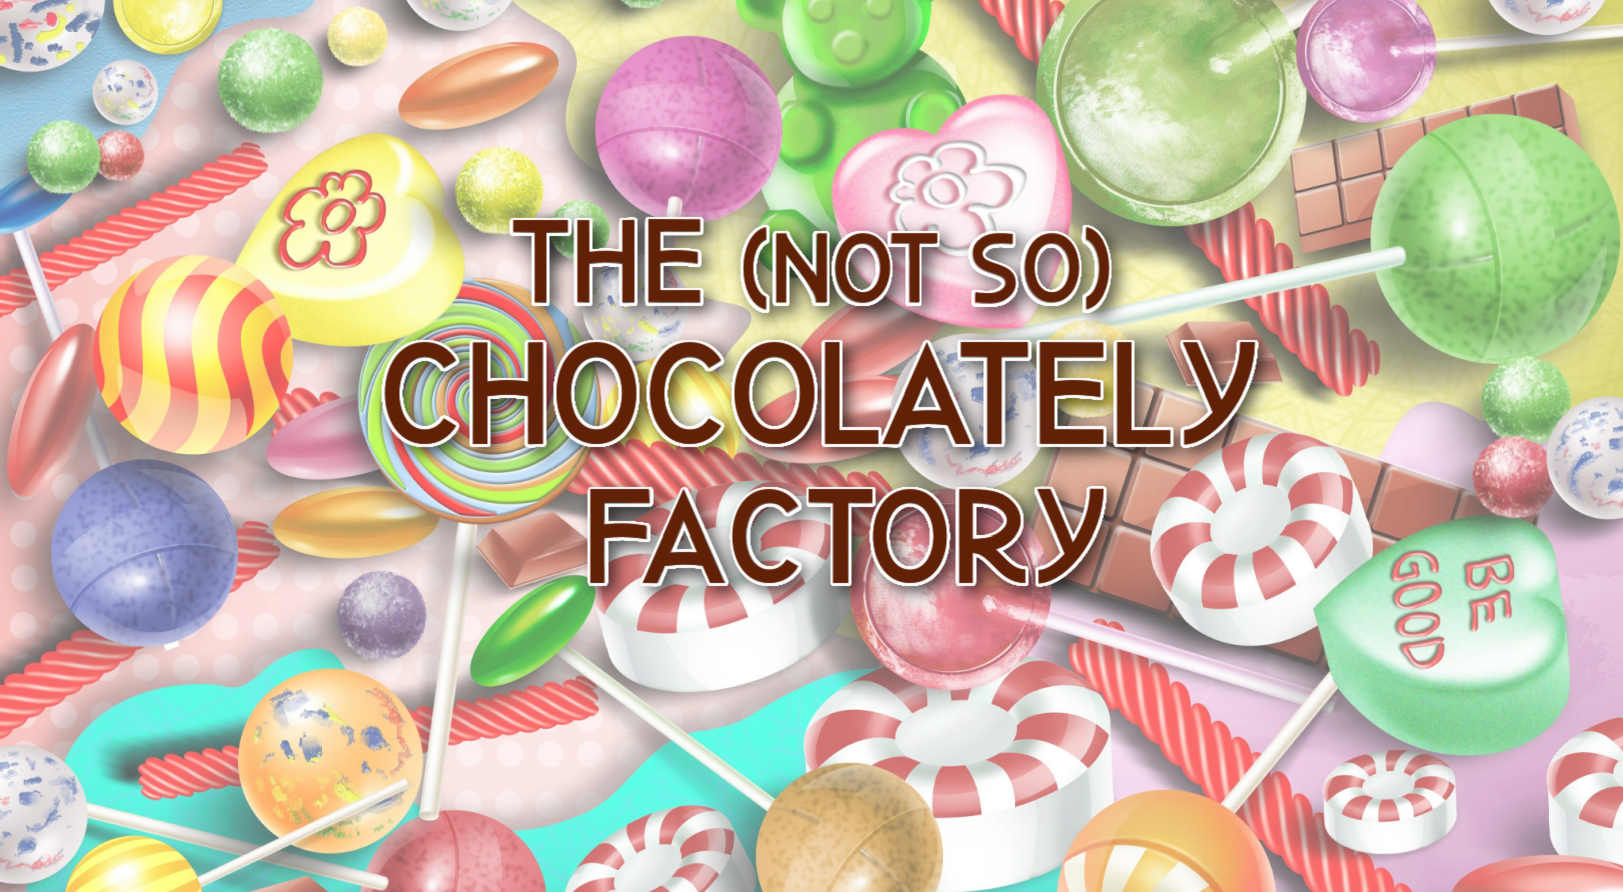 The Not So Chocolatey Factory